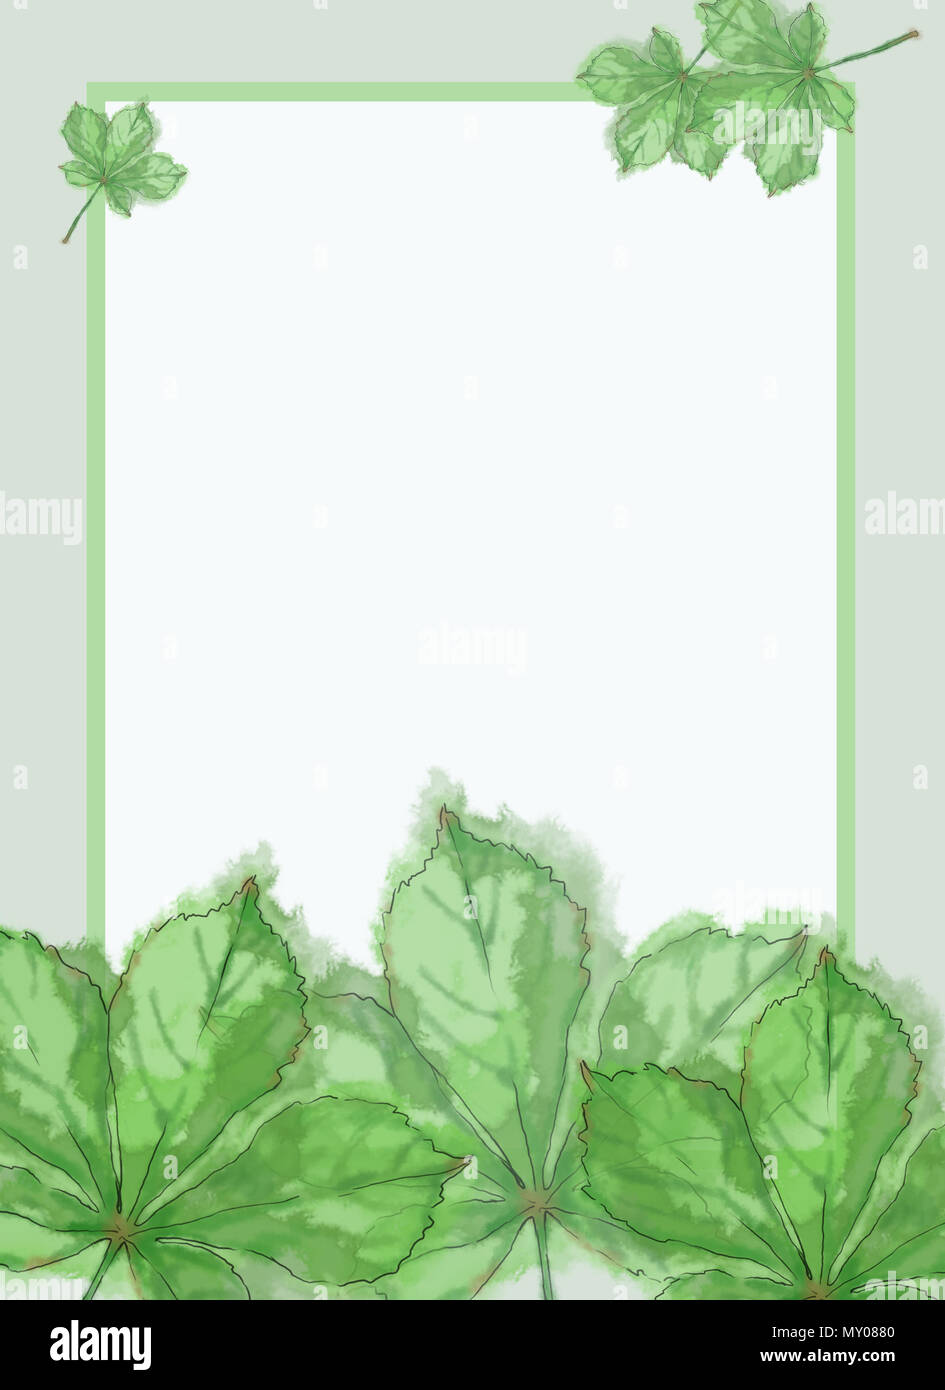 Watercolor Frame With Green Leaves Template For Prints